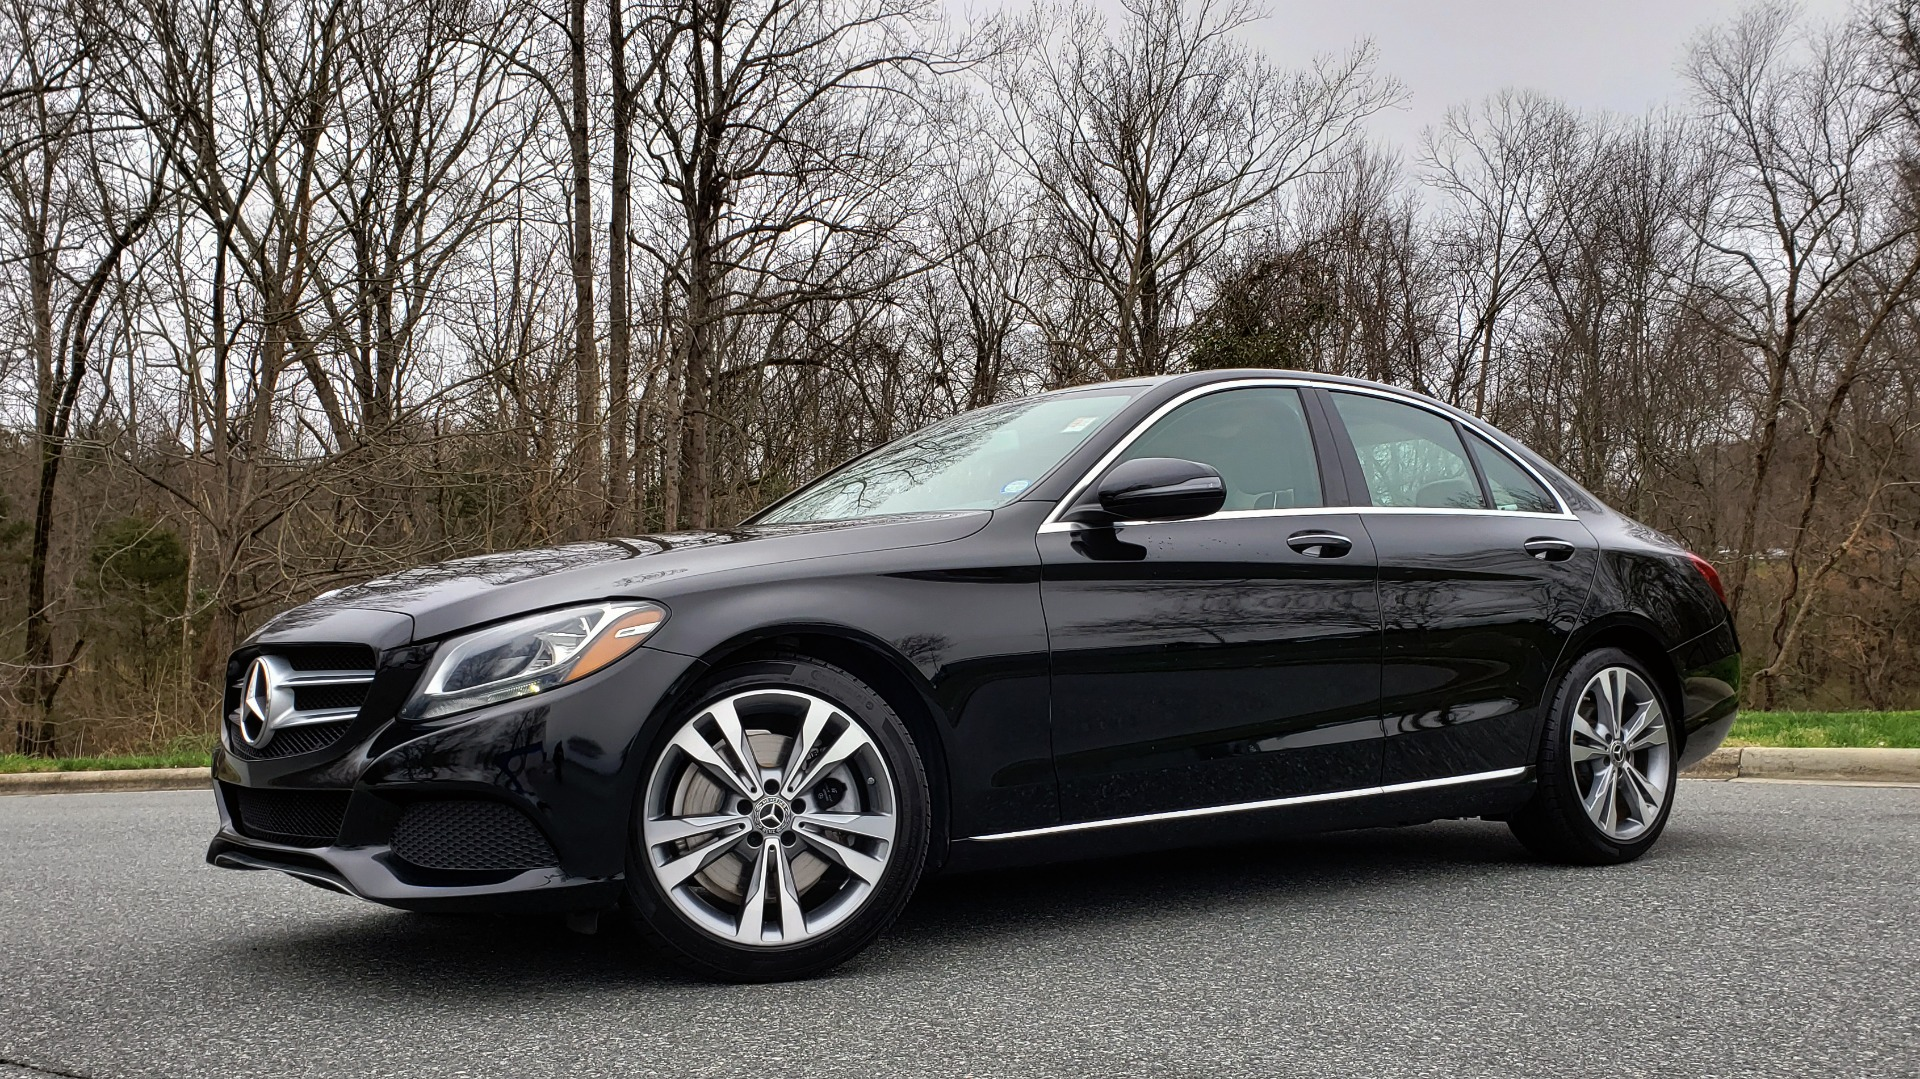 Used 2017 Mercedes-Benz C-CLASS C 300 PREMIUM / HTD STS / SUNROOF / REARVIEW for sale Sold at Formula Imports in Charlotte NC 28227 2